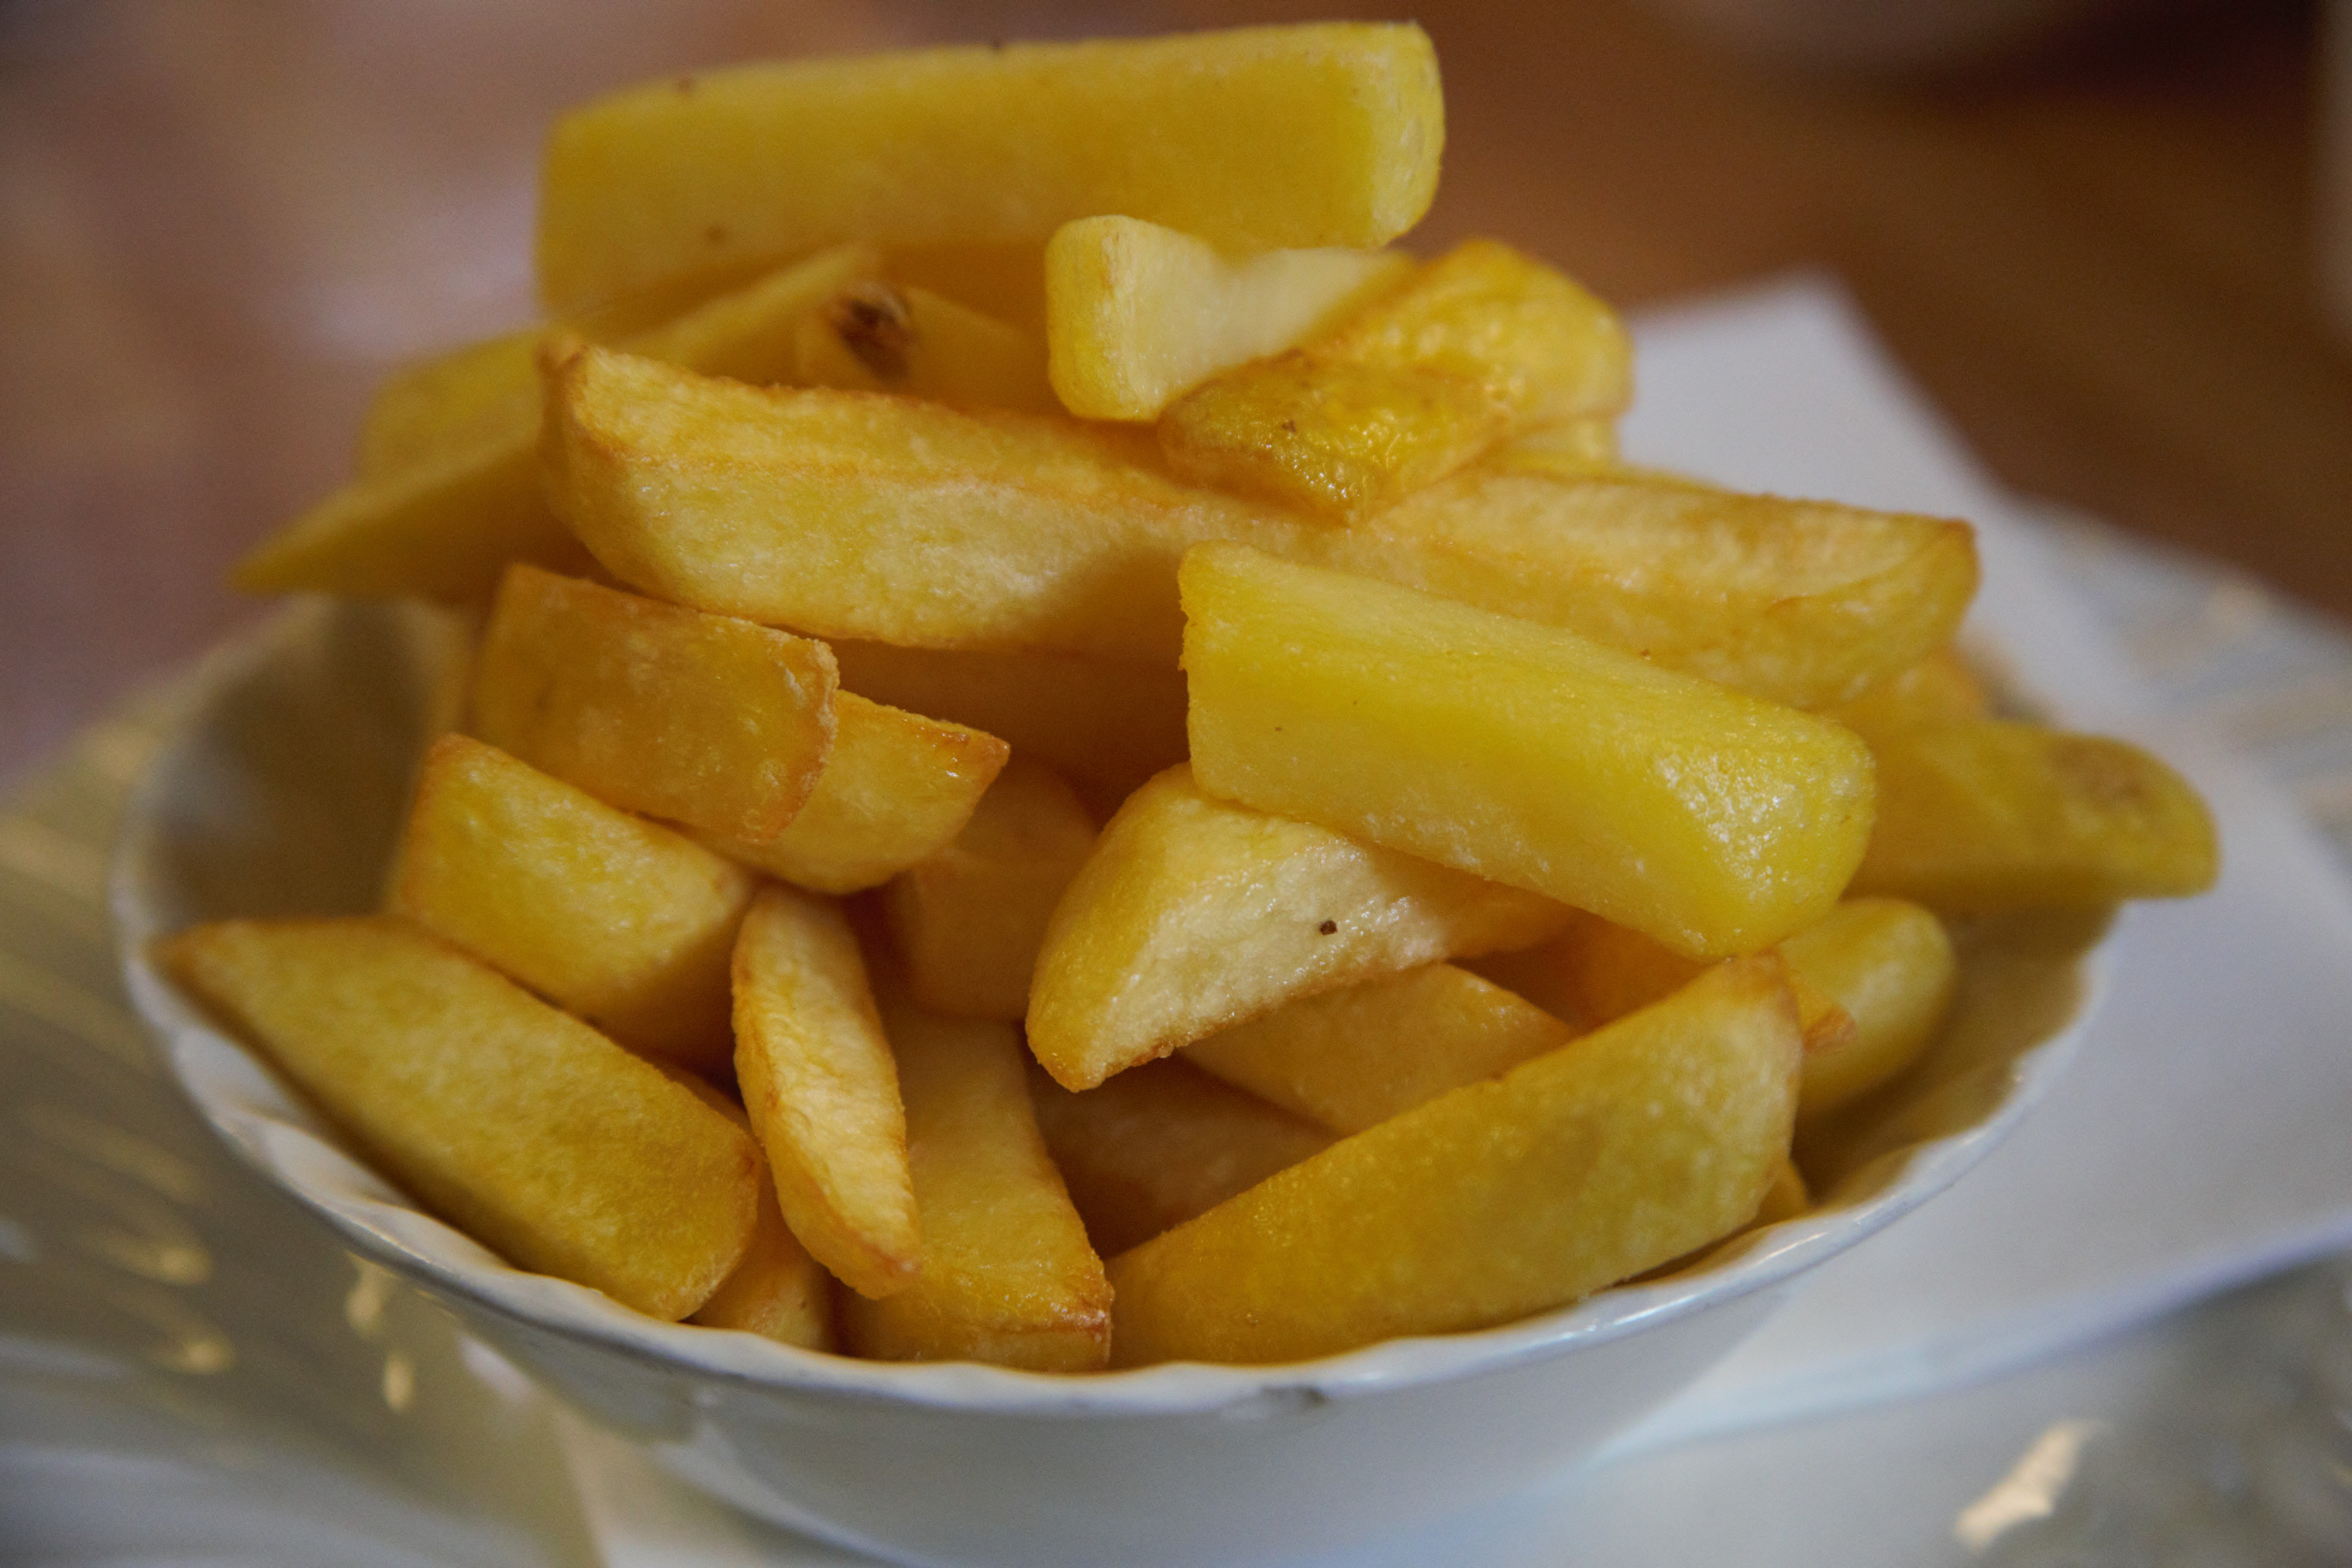 Chips served in a bowl at Barmy Barn